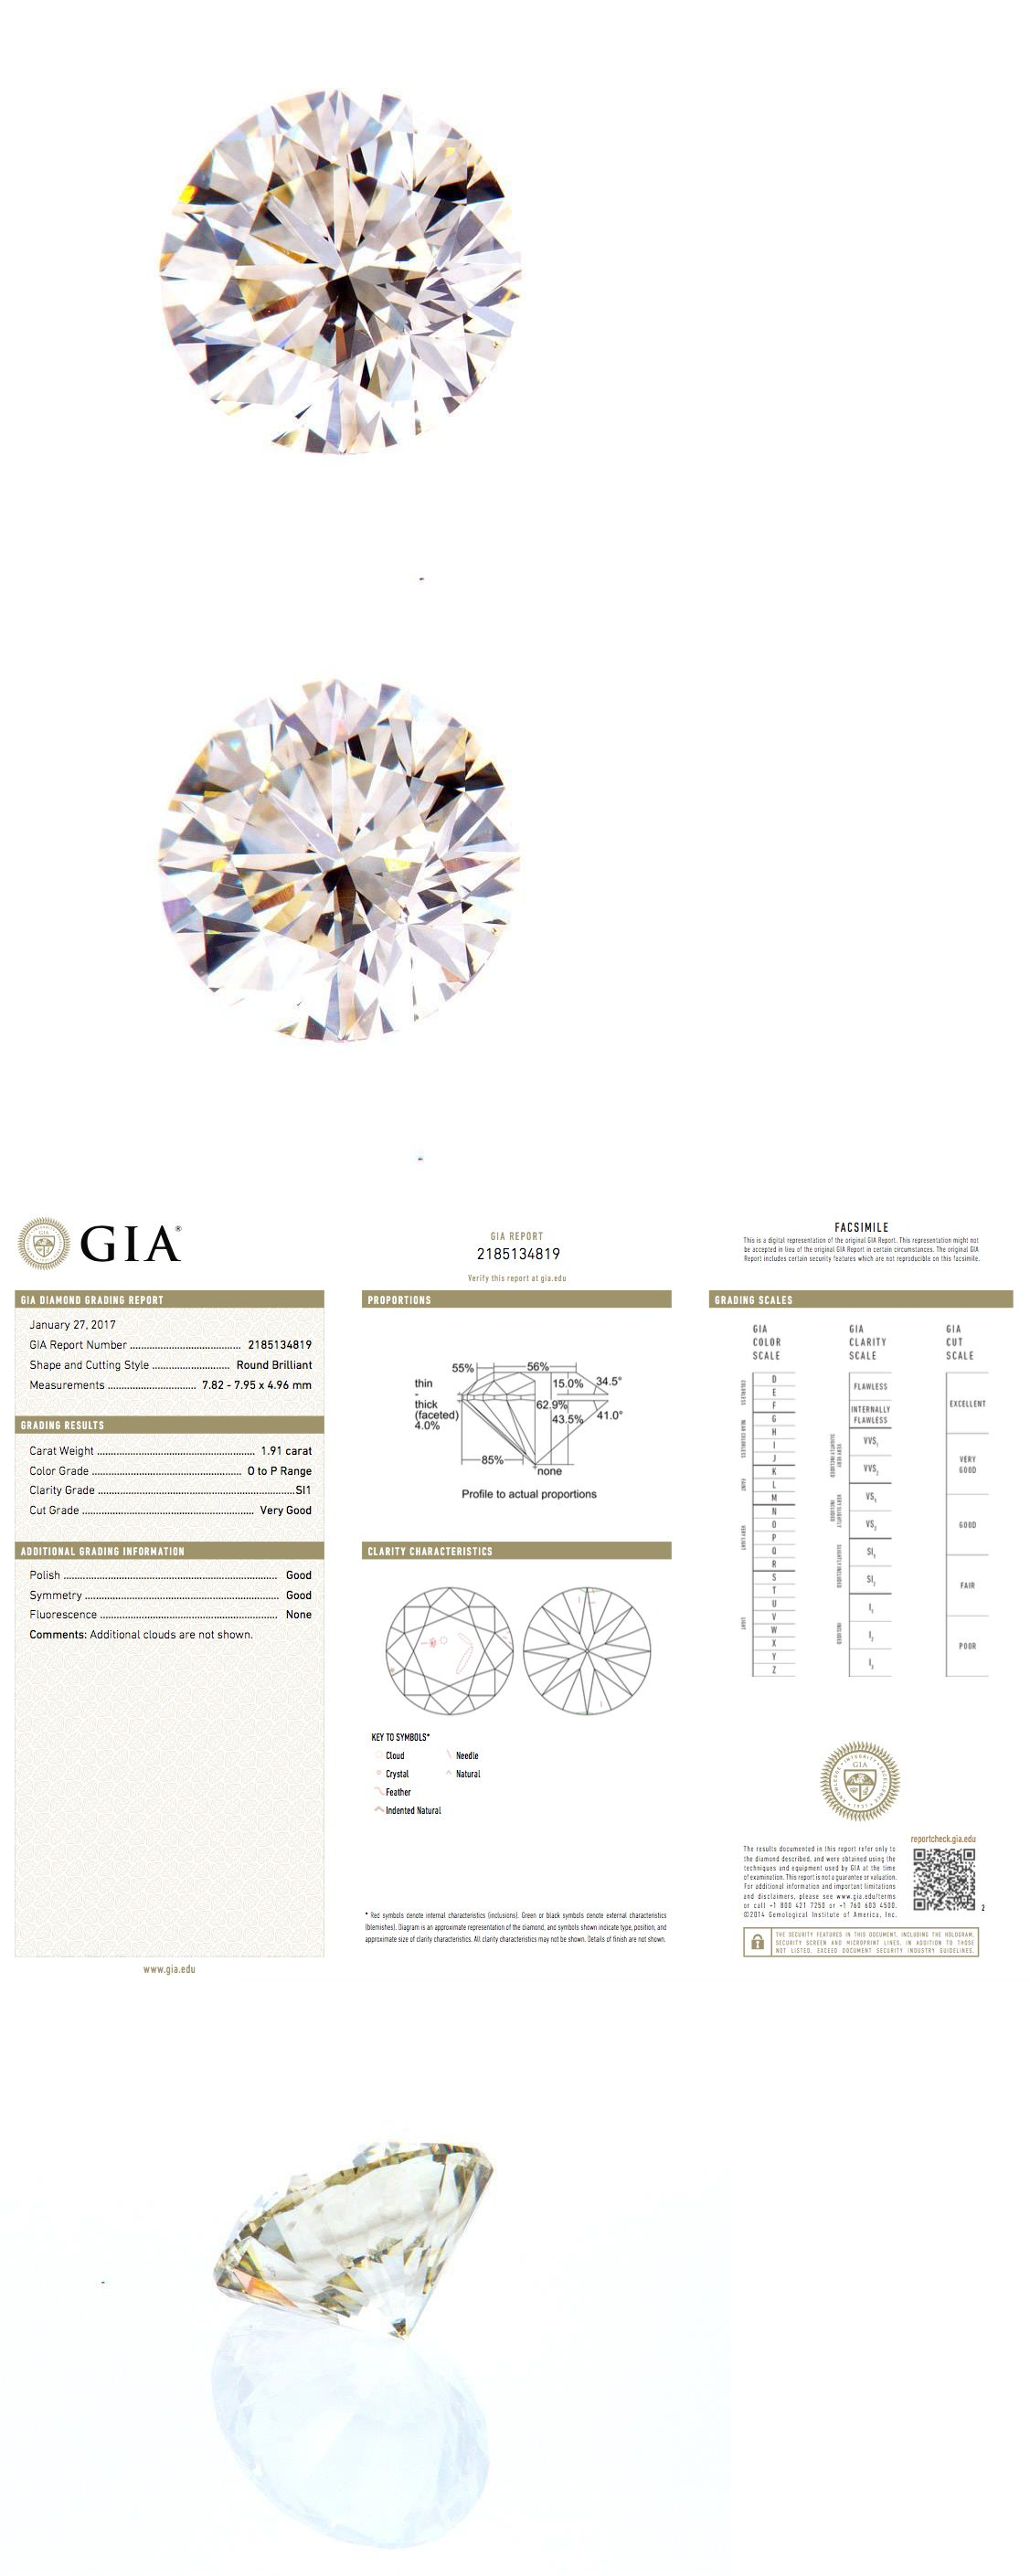 Natural Diamonds 3824 Gia Certified Natural Round Cut Brilliant Loose Diamond 1 91 Ct Si1 Clarity Buy It Now Only 5000 O Natural Diamonds 3824 Jewel